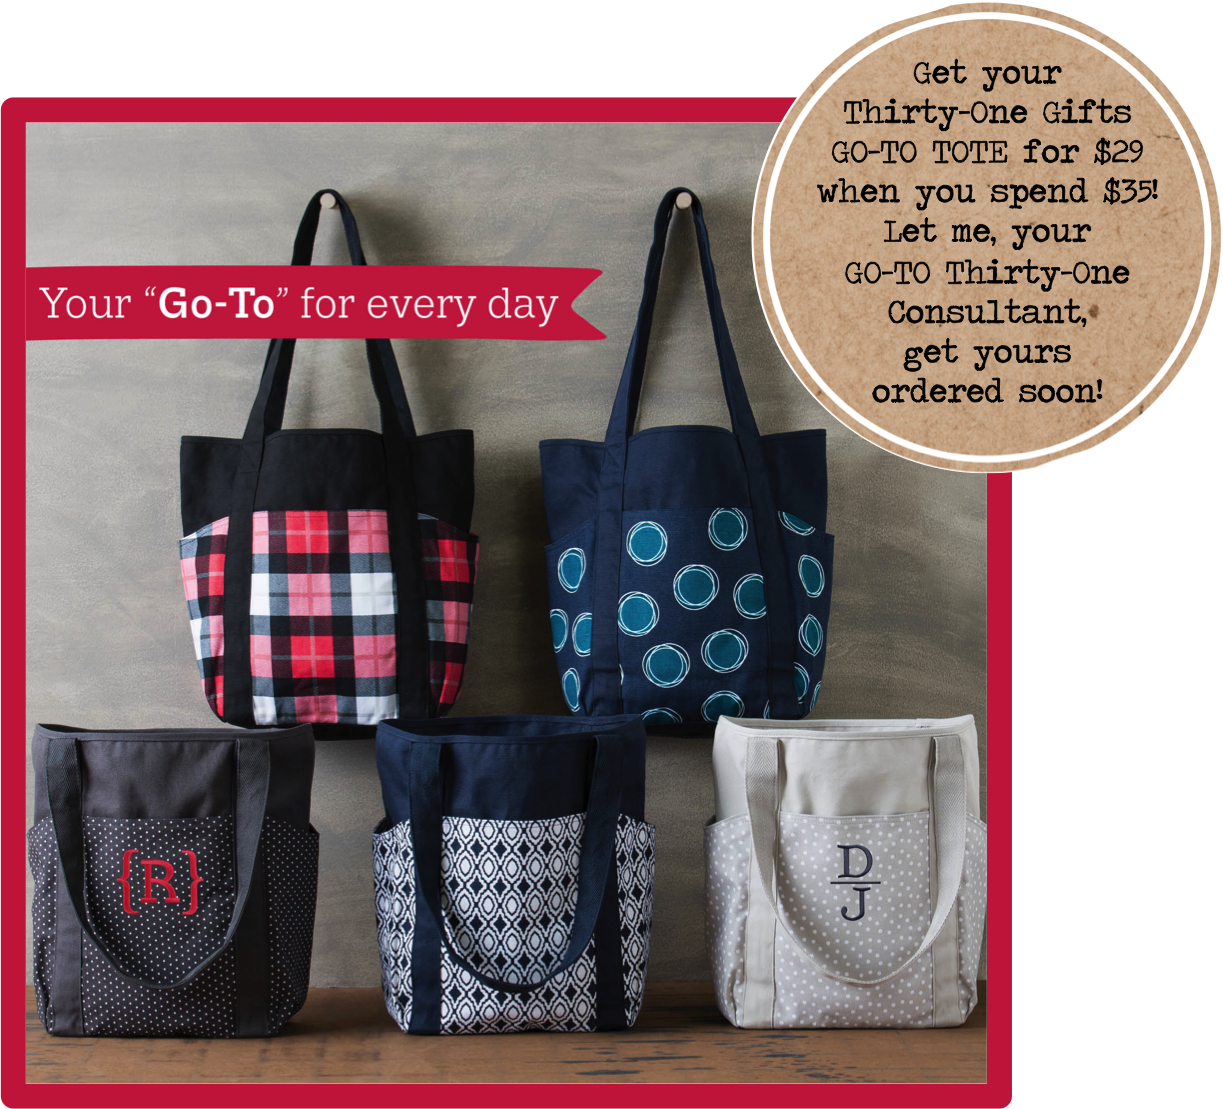 Thirty One Gifts Go To Tote